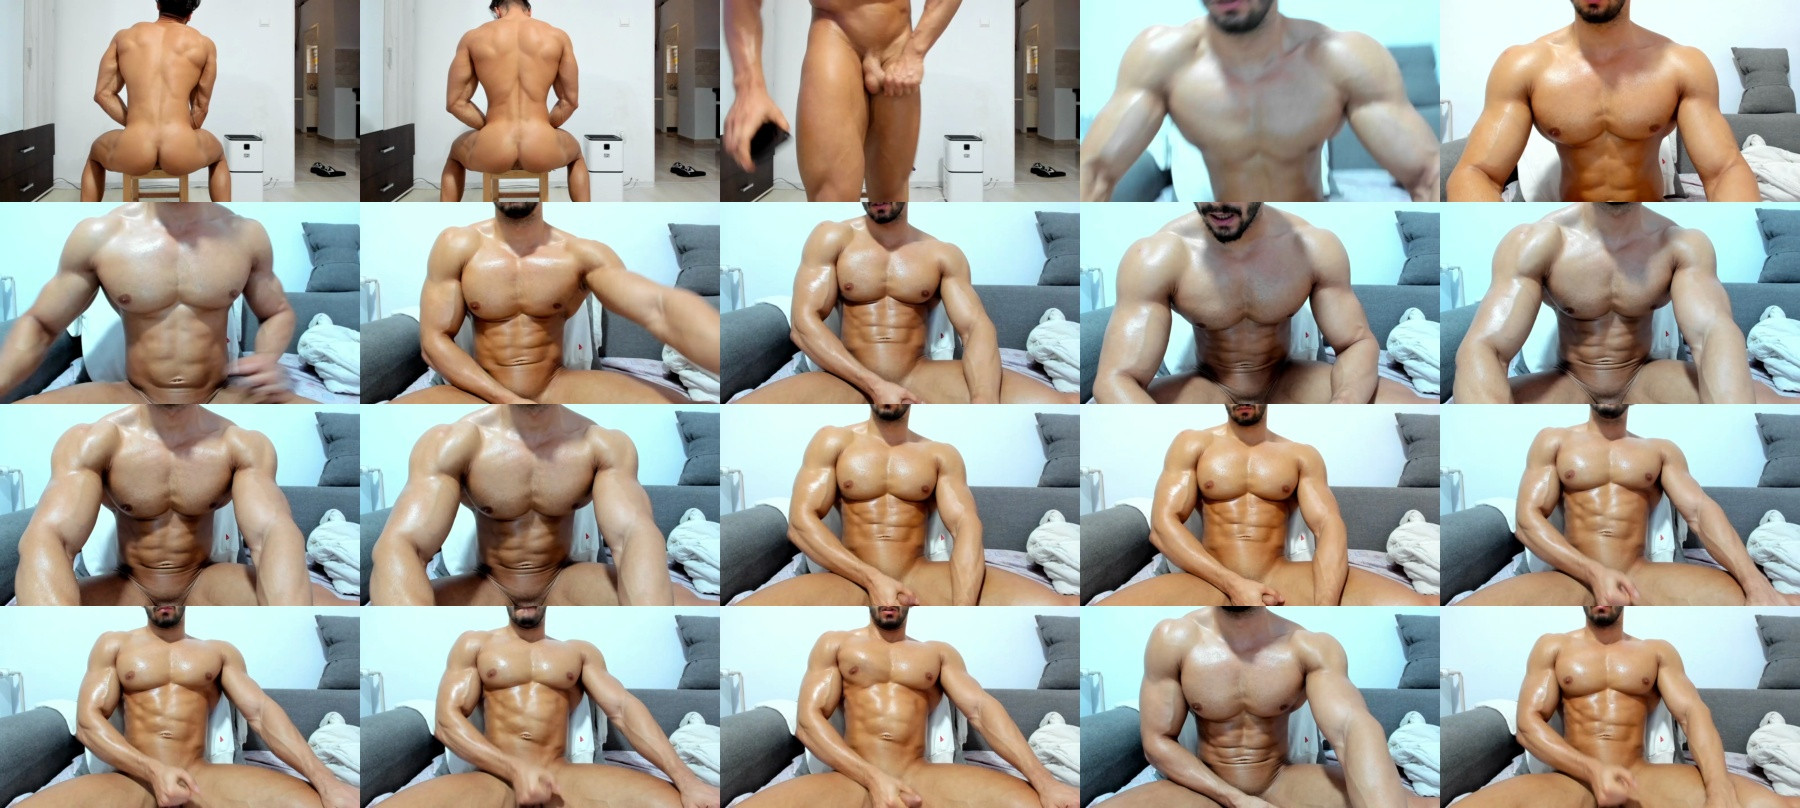 Mr_Fitness_Xxx Chaturbate 02-03-2021 Male Naked